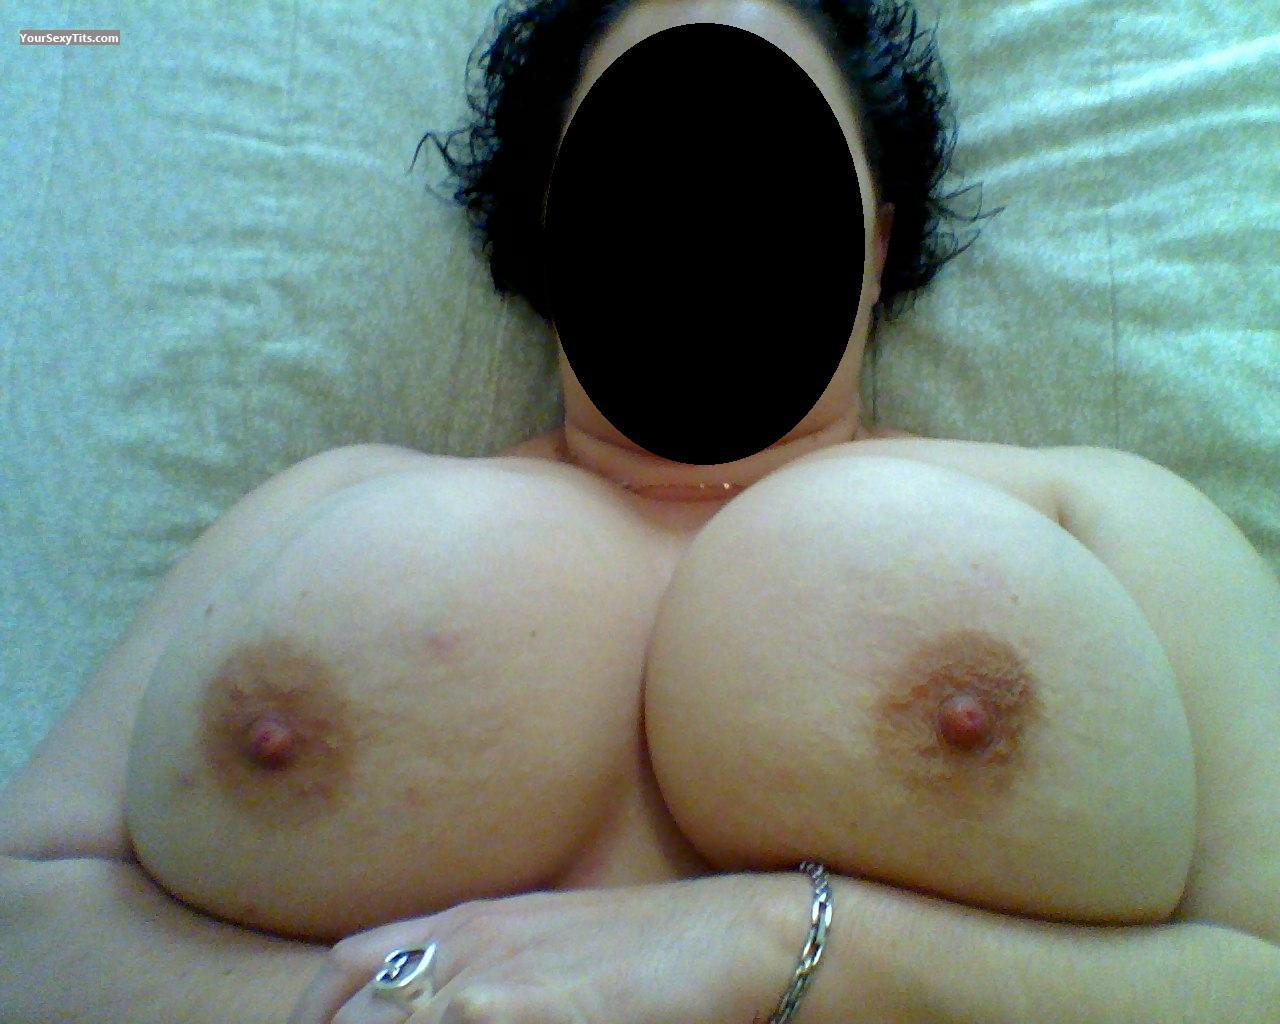 Tit Flash: Ex-Wife's Very Big Tits - Brrrrrrr from United States